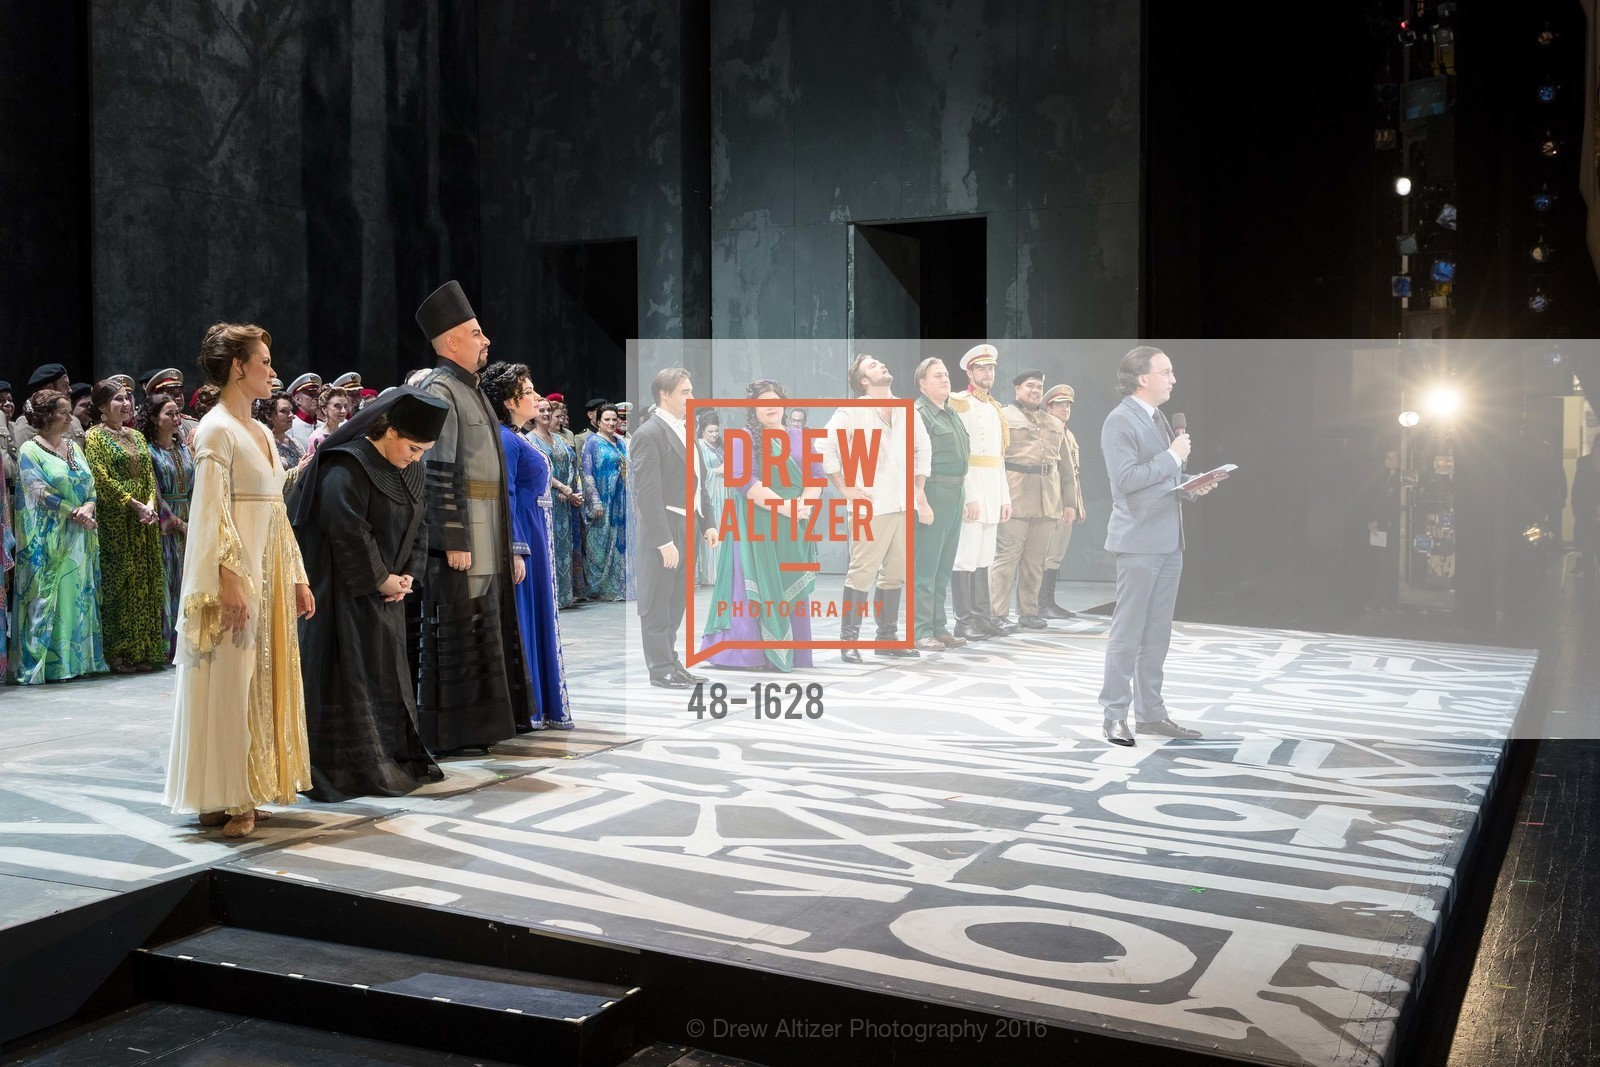 Performance, San Francisco Opera Medal presentation and Company party, December 6th, 2016, Photo